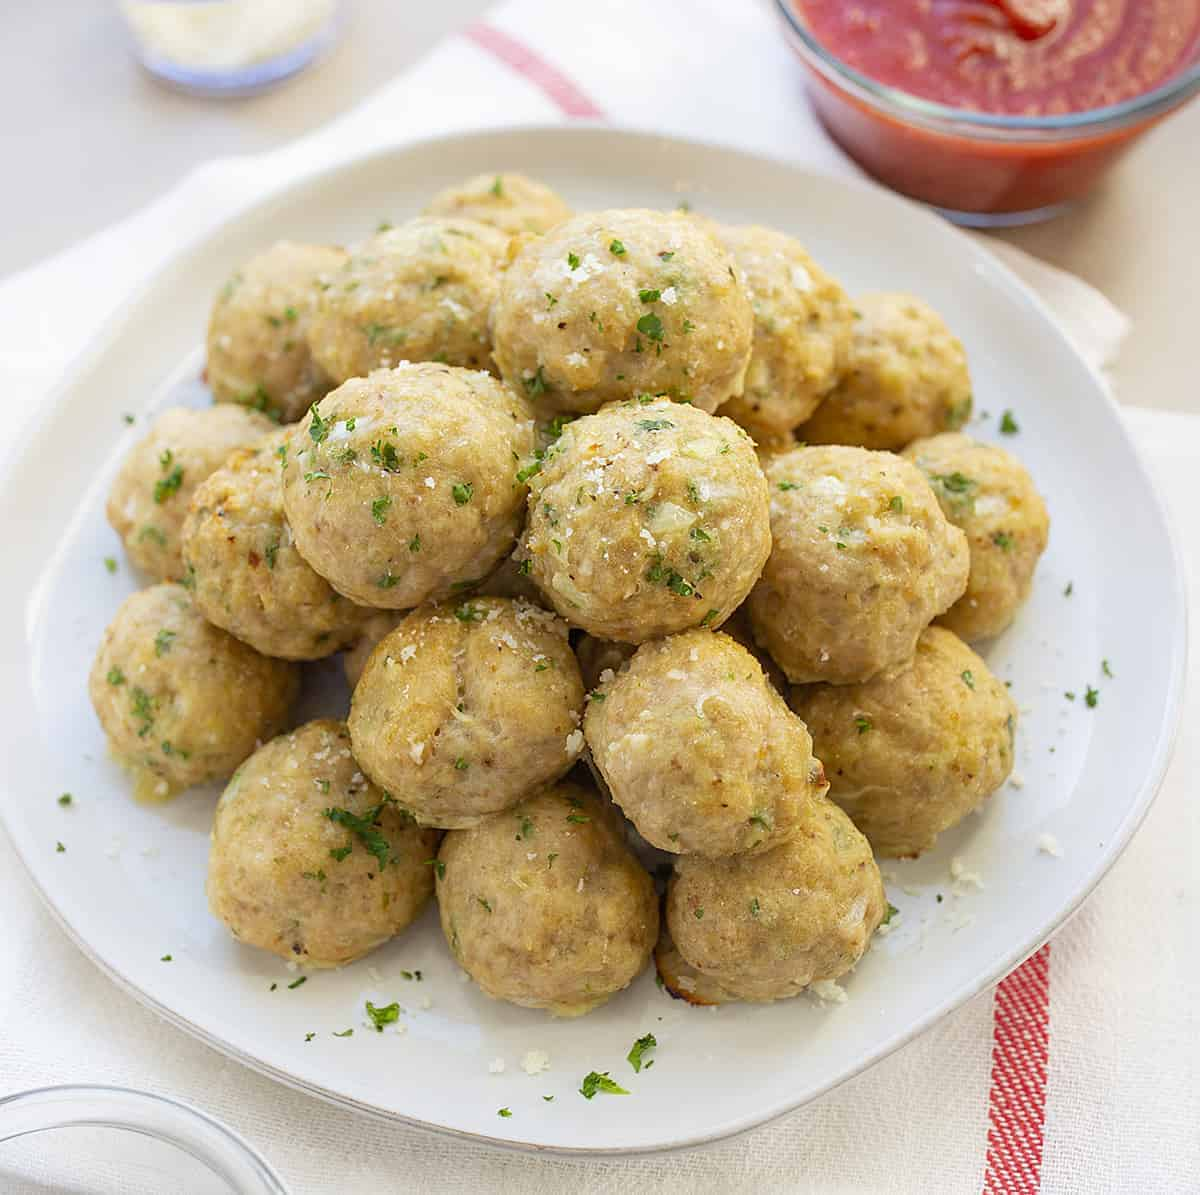 Chicken Meatballs on a White Plate